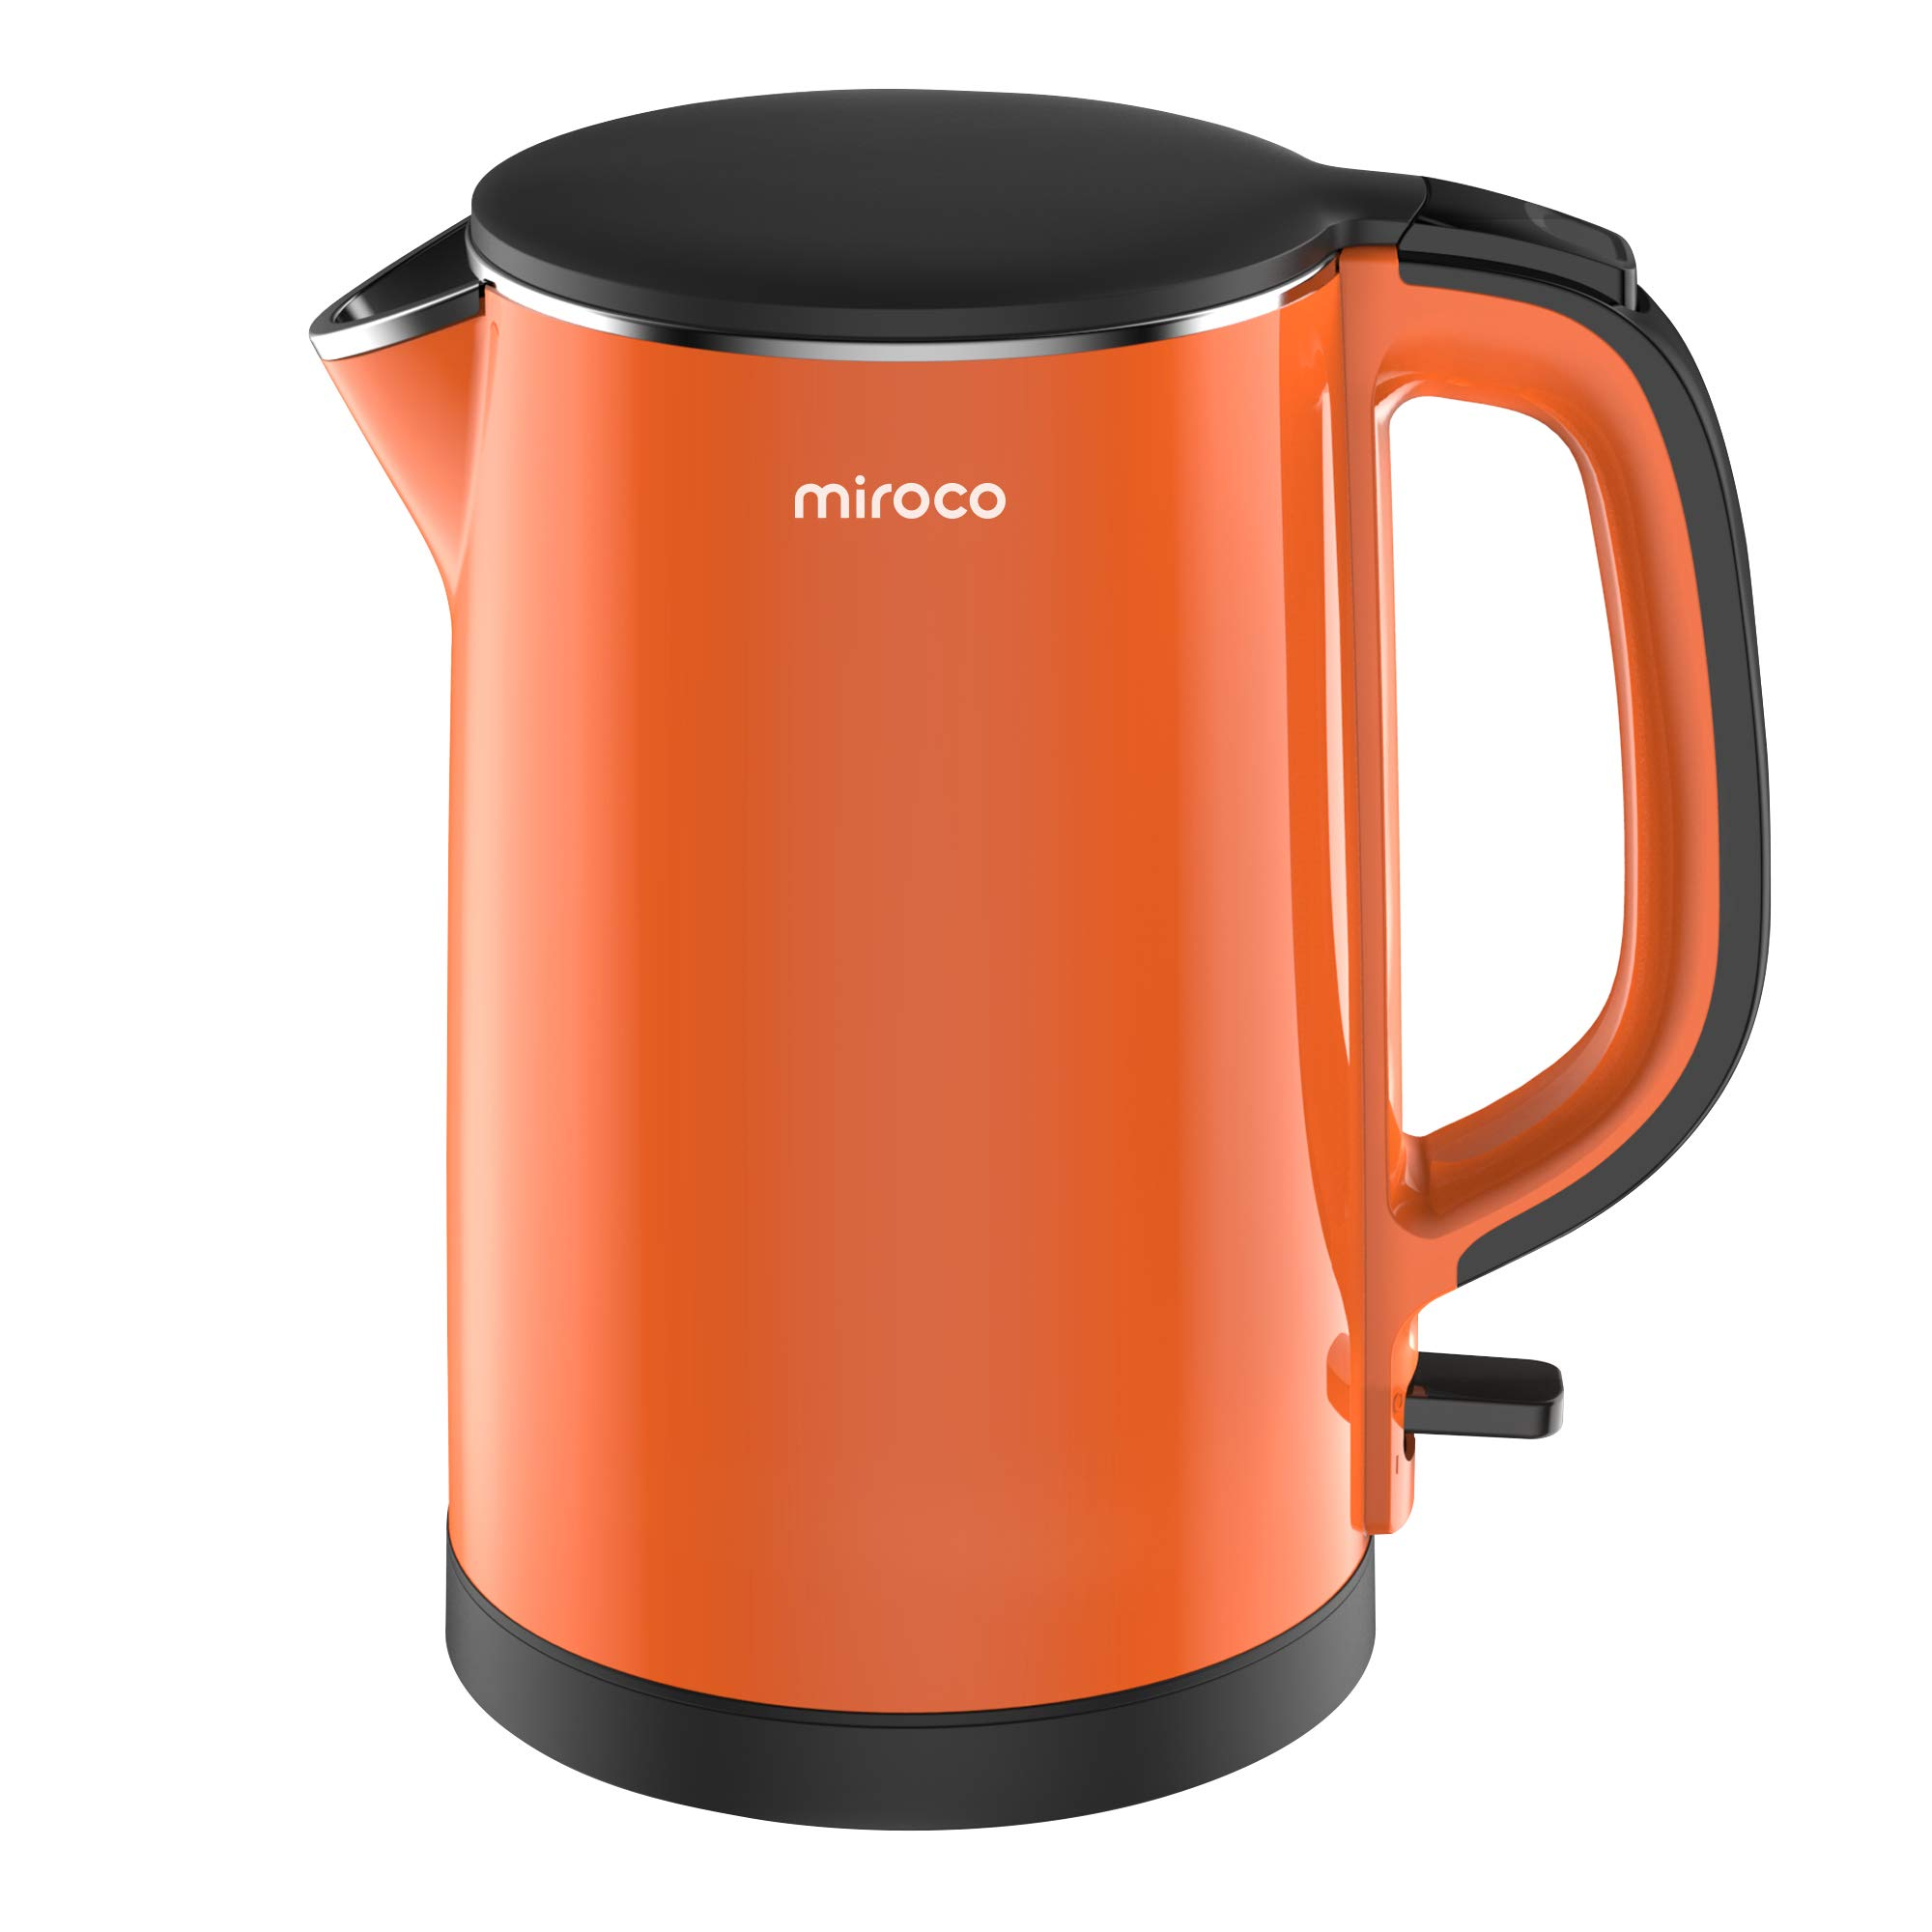 Electric Kettle, Miroco Double Wall 100% Stainless Steel BPA-Free Cool Touch Tea Kettle with 1500W Fast Boiling Heater, Overheating Protection, Cordless with Auto Shut-Off & Boil Dry Protection, WhiteWater Kettle with LED Indicator Light